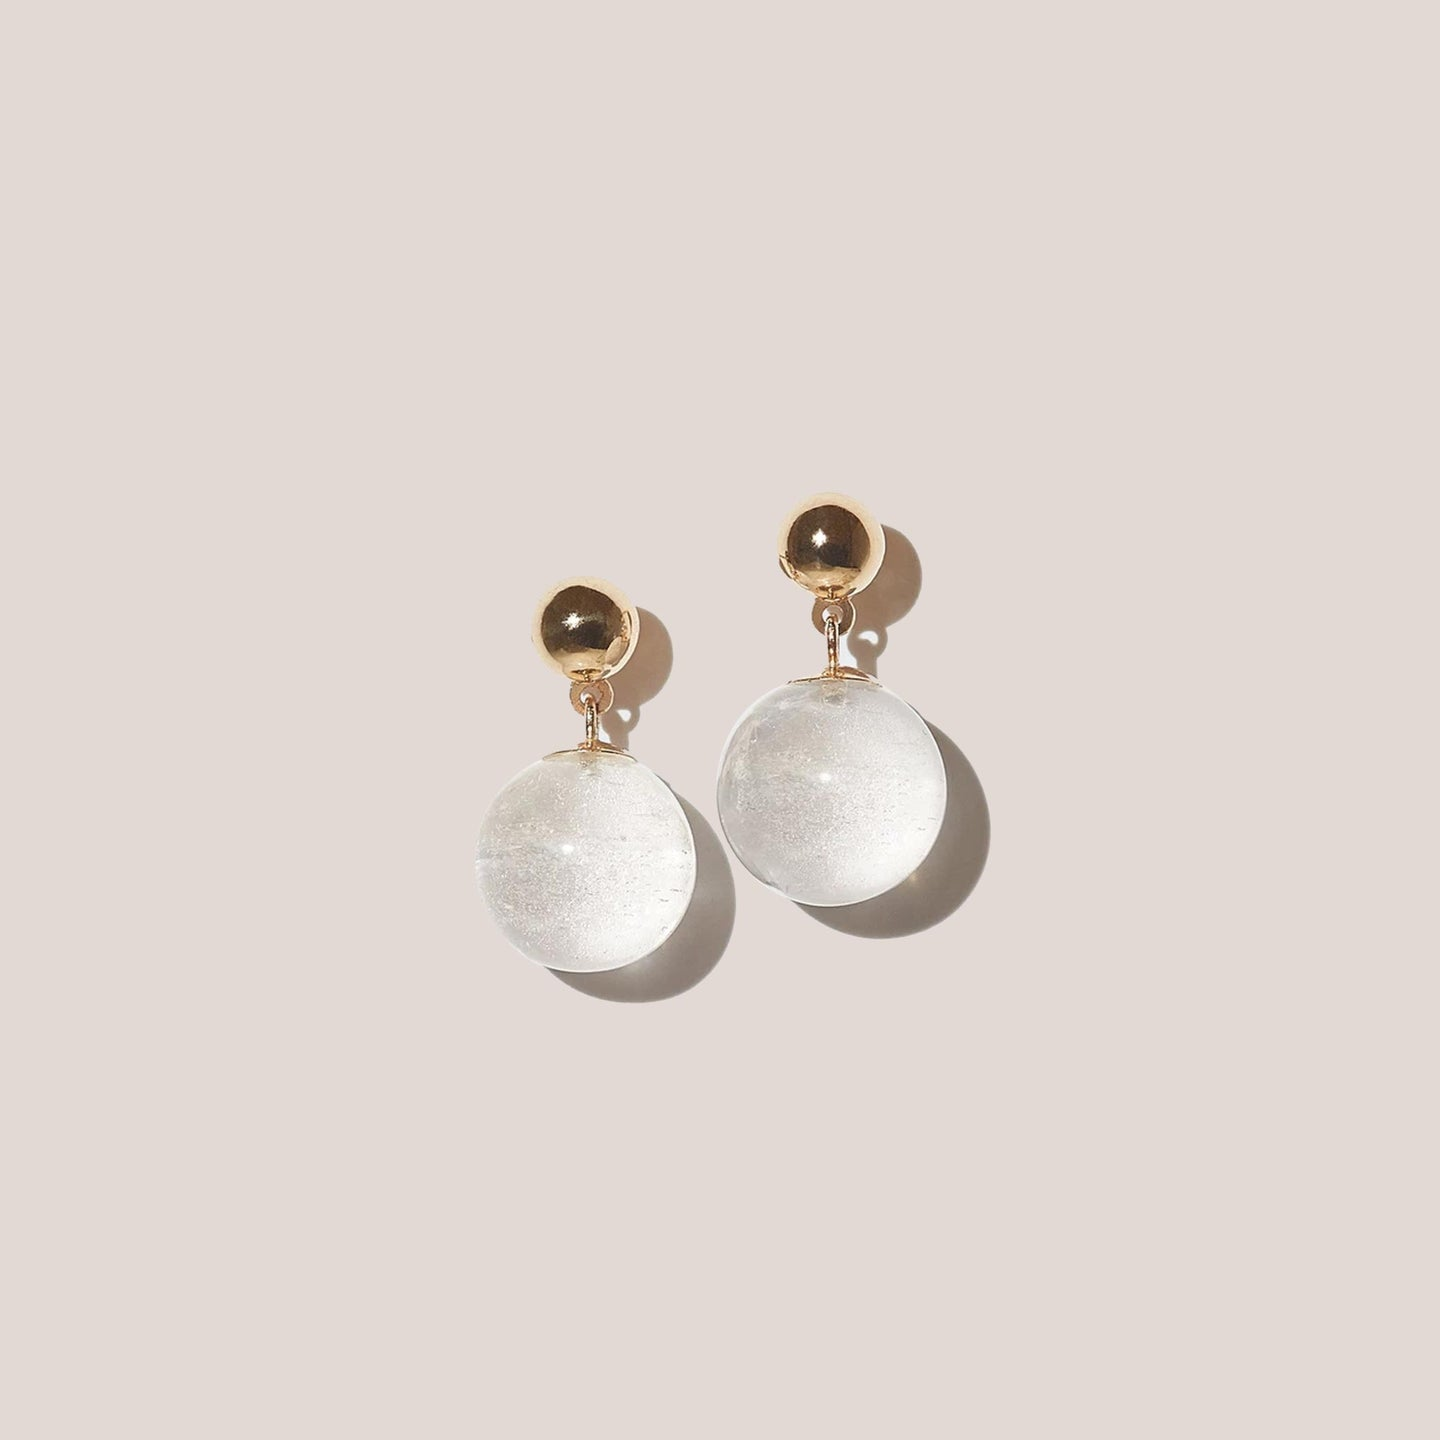 J. Hannah - Glace Drop Earrings, available at LCD.